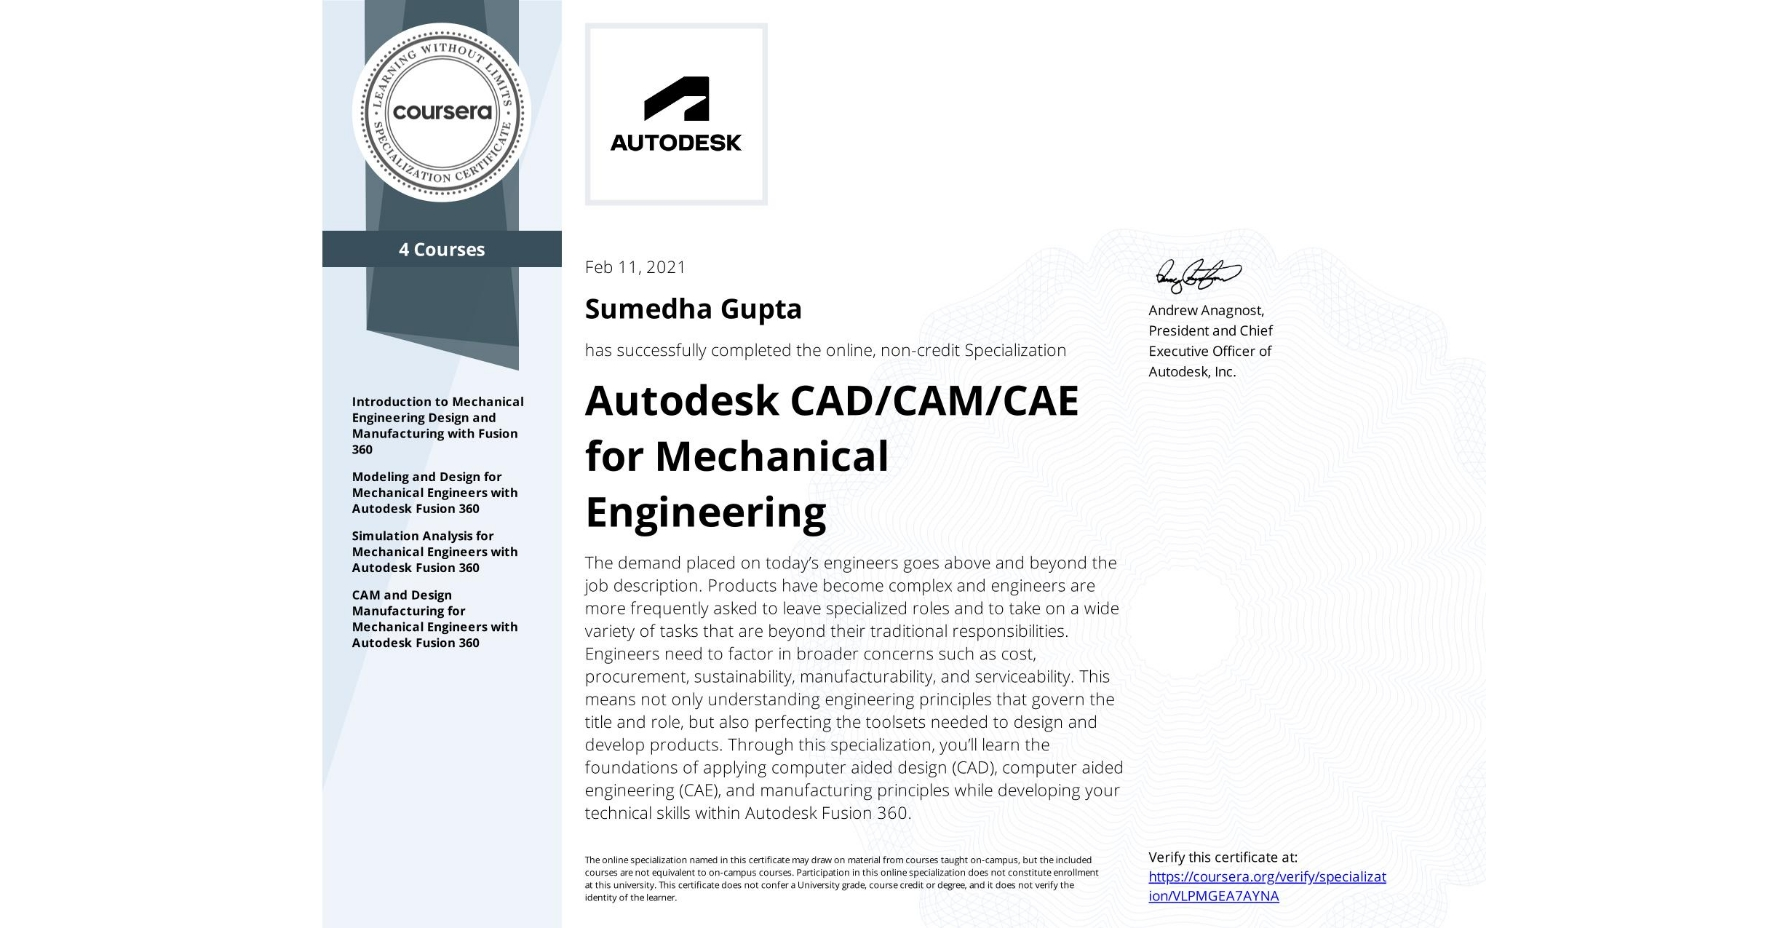 View certificate for Sumedha Gupta, Autodesk CAD/CAM/CAE for Mechanical Engineering, offered through Coursera. The demand placed on today's engineers goes above and beyond the job description. Products have become complex and engineers are more frequently asked to leave specialized roles and to take on a wide variety of tasks that are beyond their traditional responsibilities. Engineers need to factor in broader concerns such as cost, procurement, sustainability, manufacturability, and serviceability. This means not only understanding engineering principles that govern the title and role, but also perfecting the toolsets needed to design and develop products.  Through this specialization, you'll learn the foundations of applying computer aided design (CAD), computer aided engineering (CAE), and manufacturing principles while developing your technical skills within Autodesk Fusion 360.